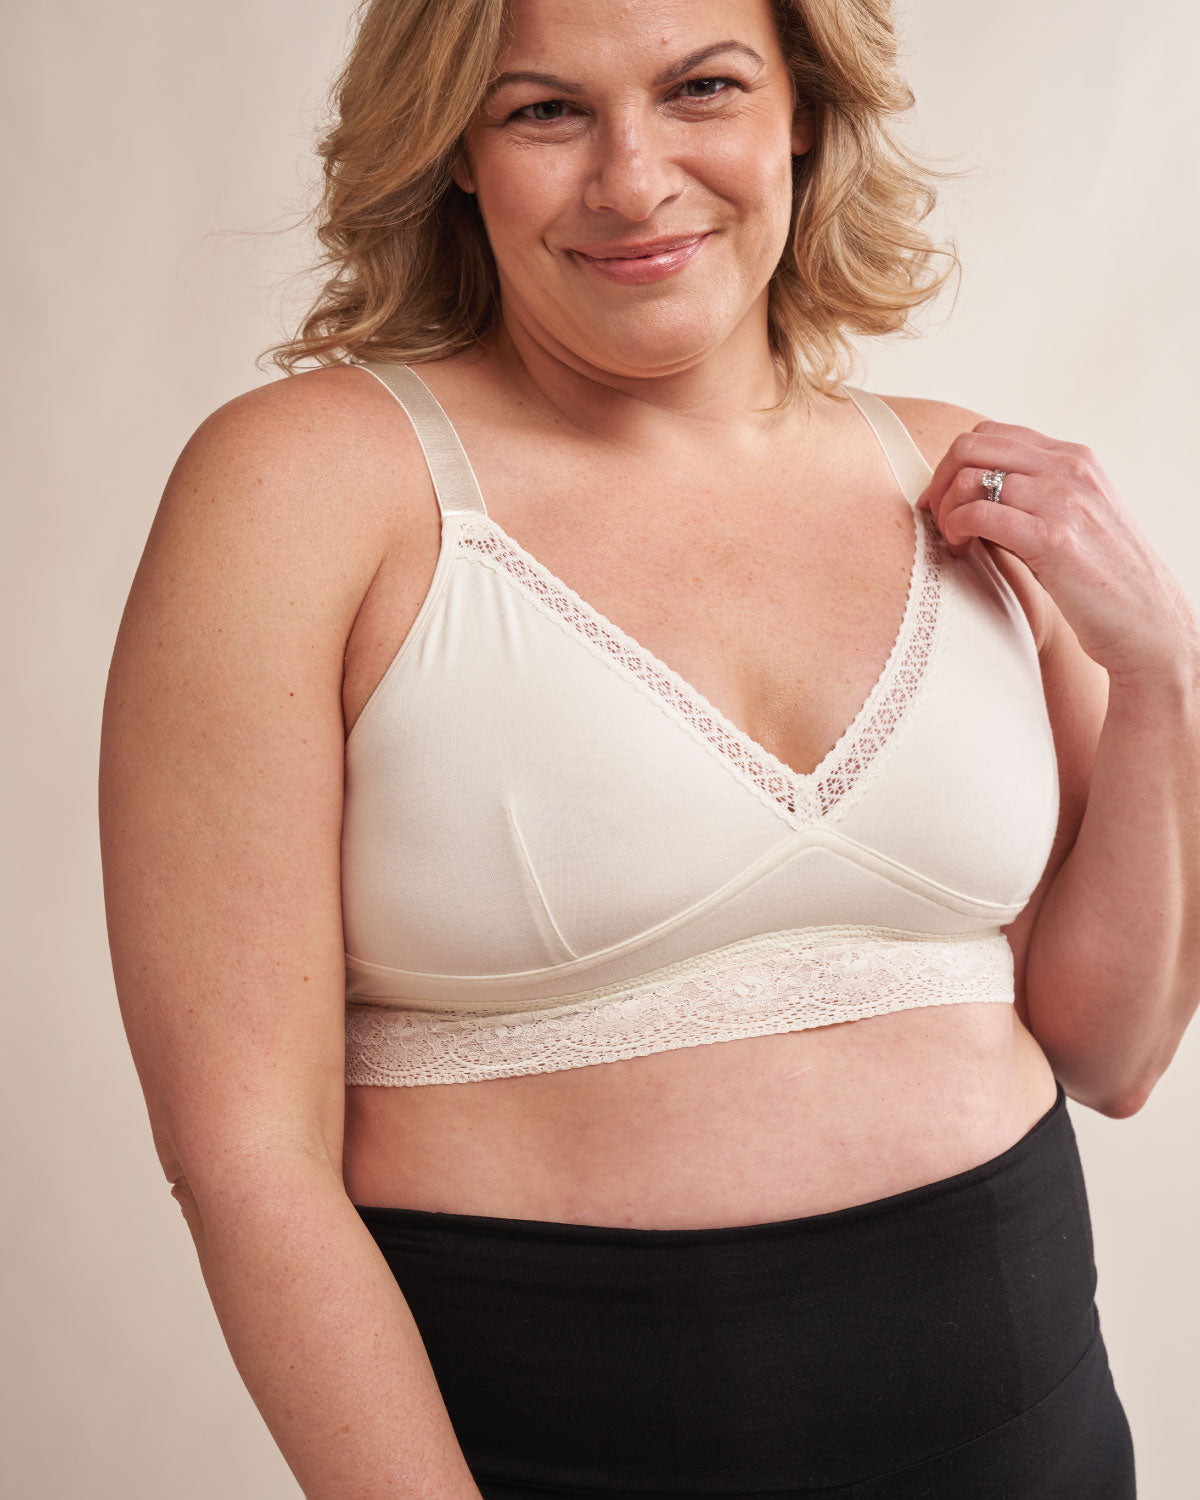 Ivory, longline pullover bra with a lace trim, soft cups, mesh back, adjustable & convertible straps, on a model with breast implants.